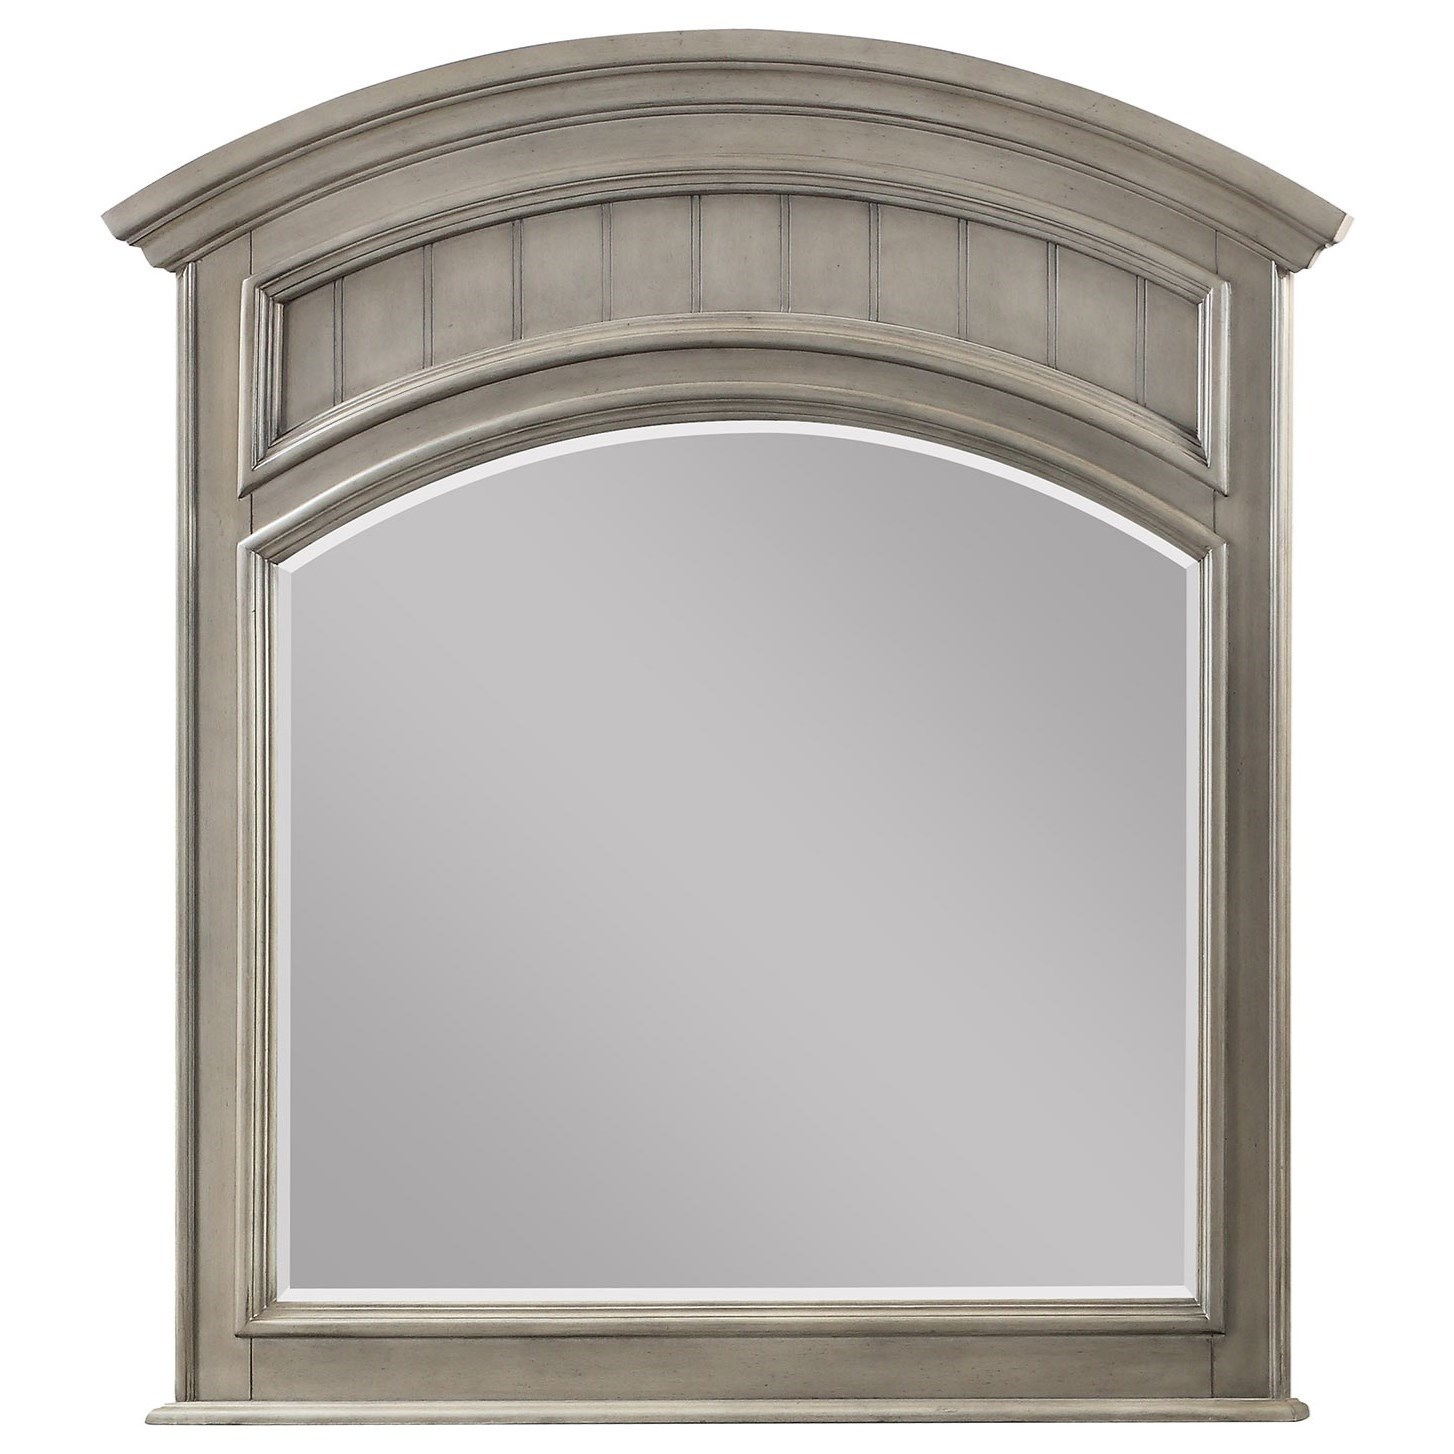 Dresser Mirror with Arched Top